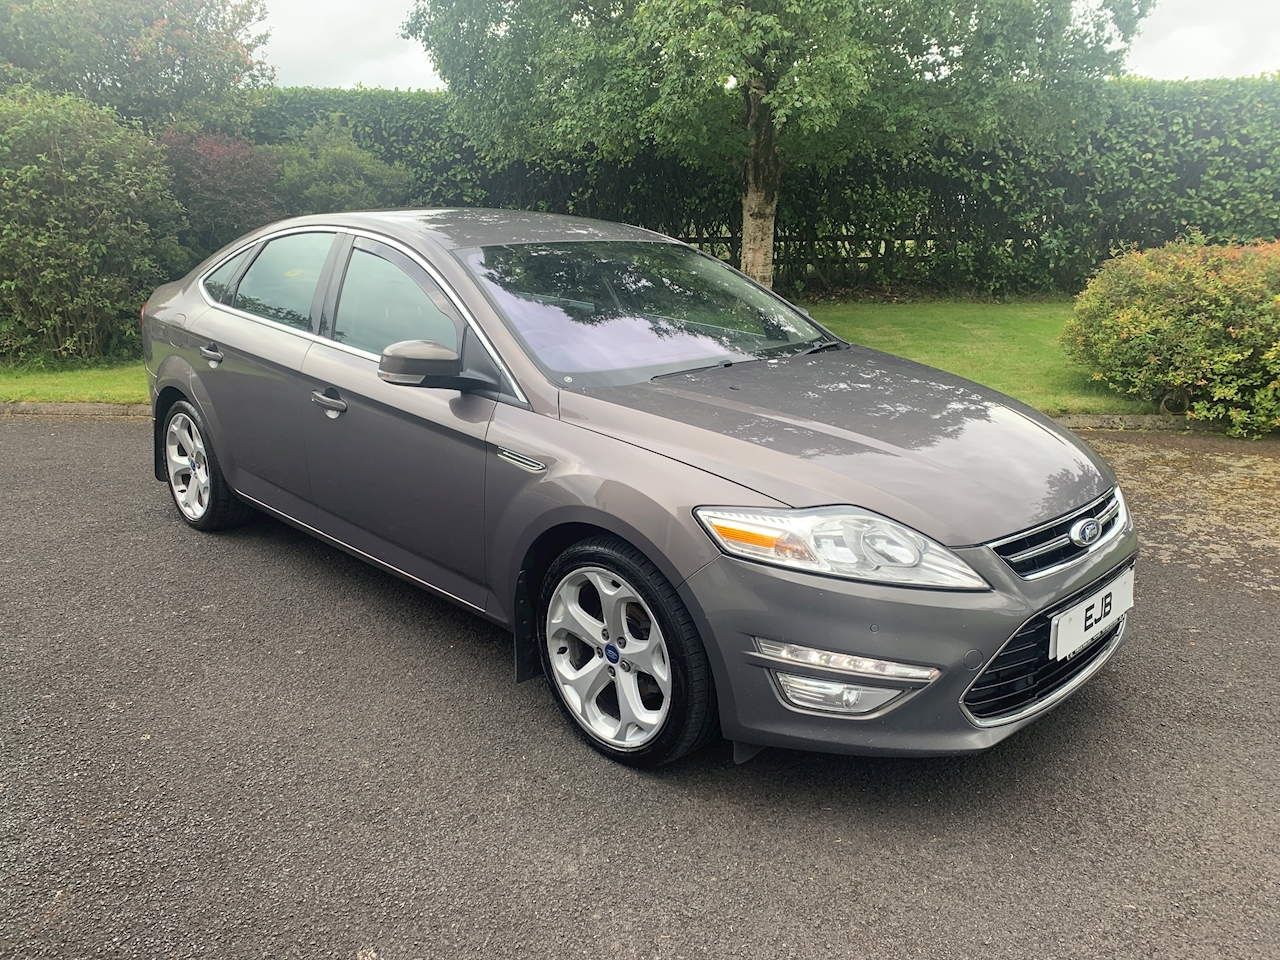 Ford Mondeo Titanium Tdci Hatchback 2.0 Manual Diesel